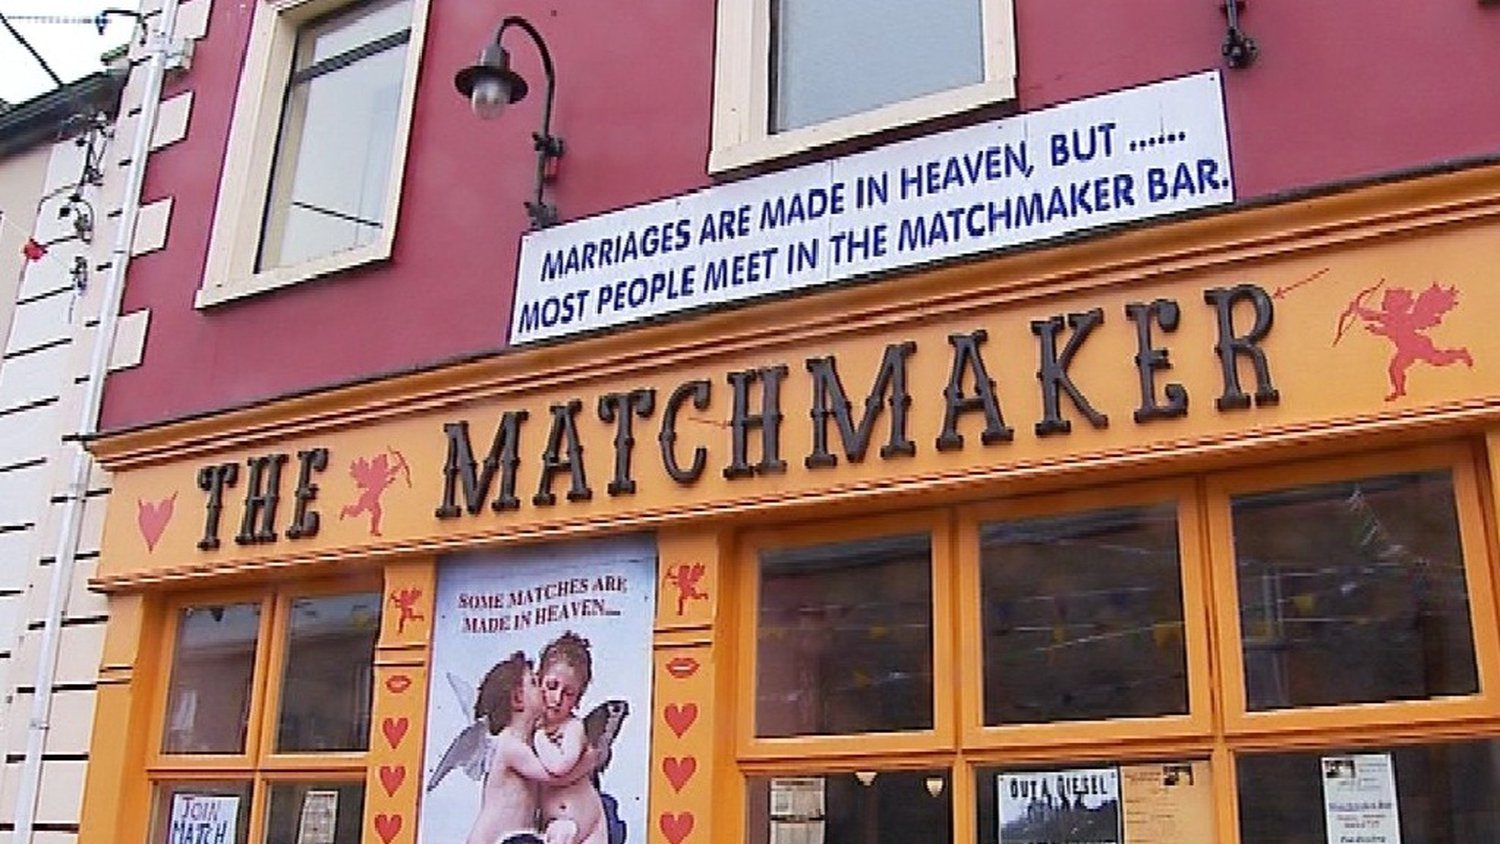 Matchmaking in heaven